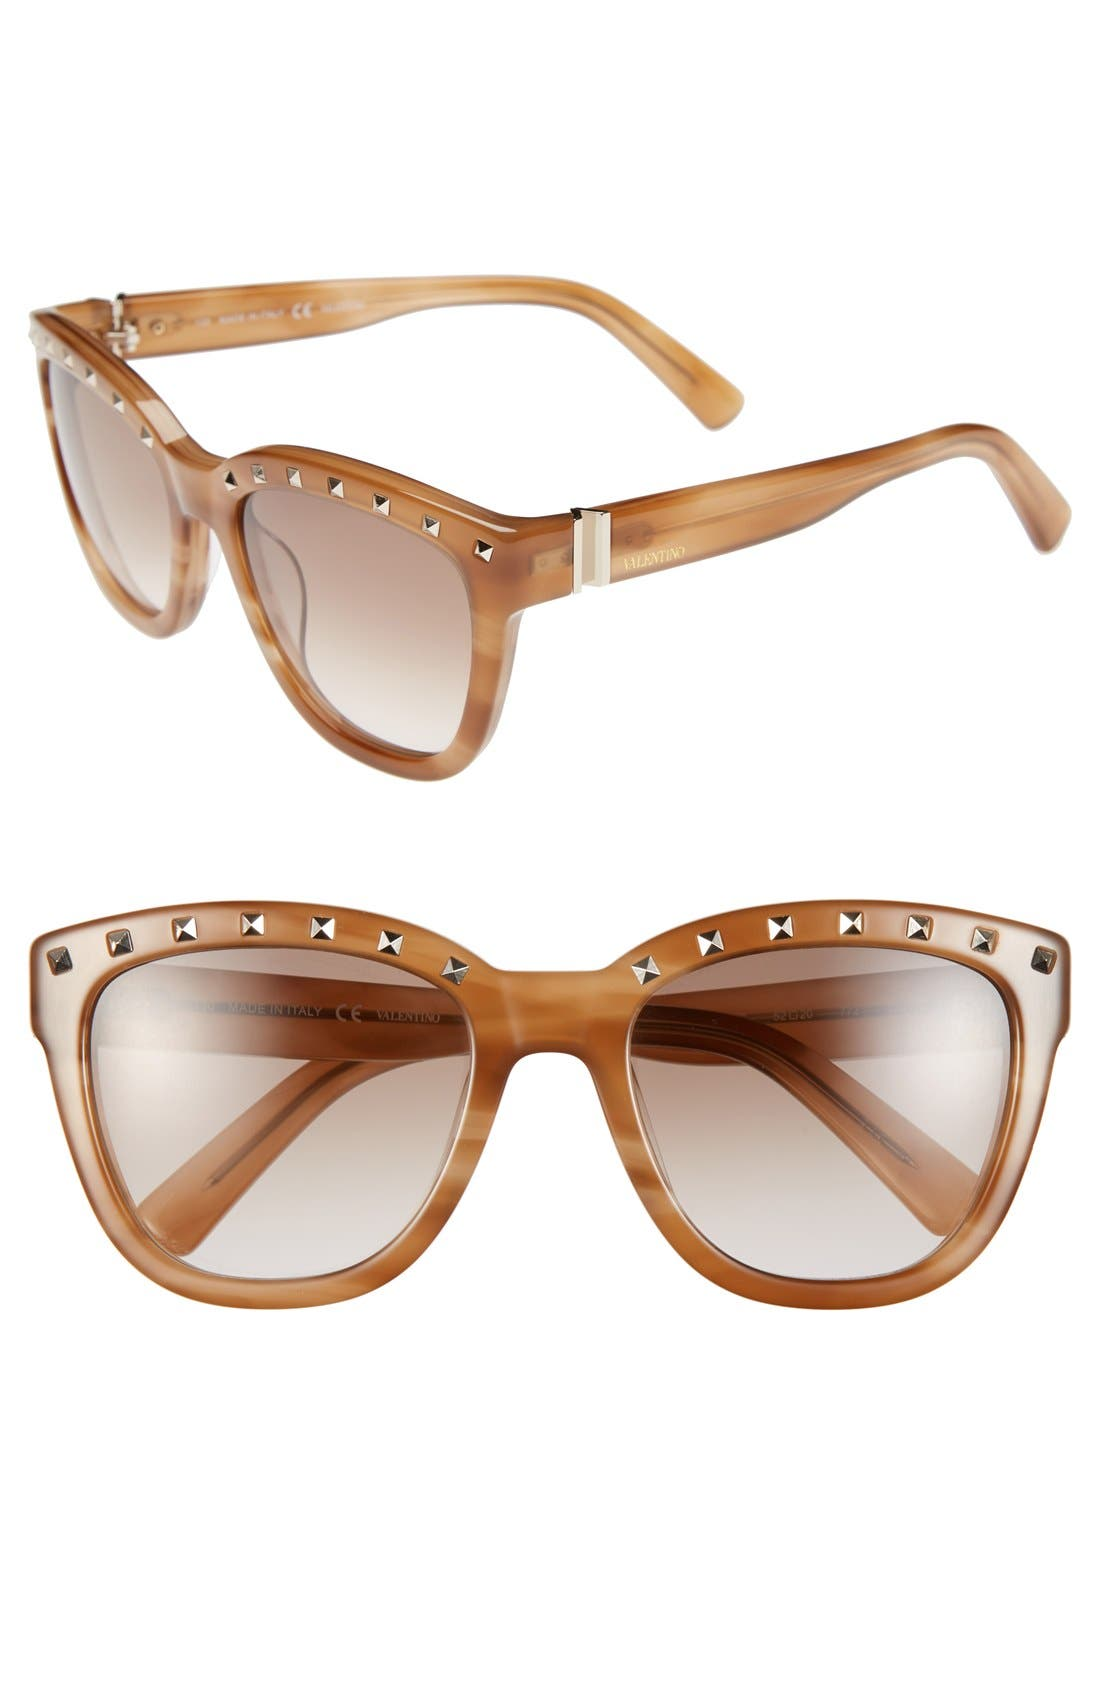 Main Image - Valentino 'Rockstud' 52mm Sunglasses